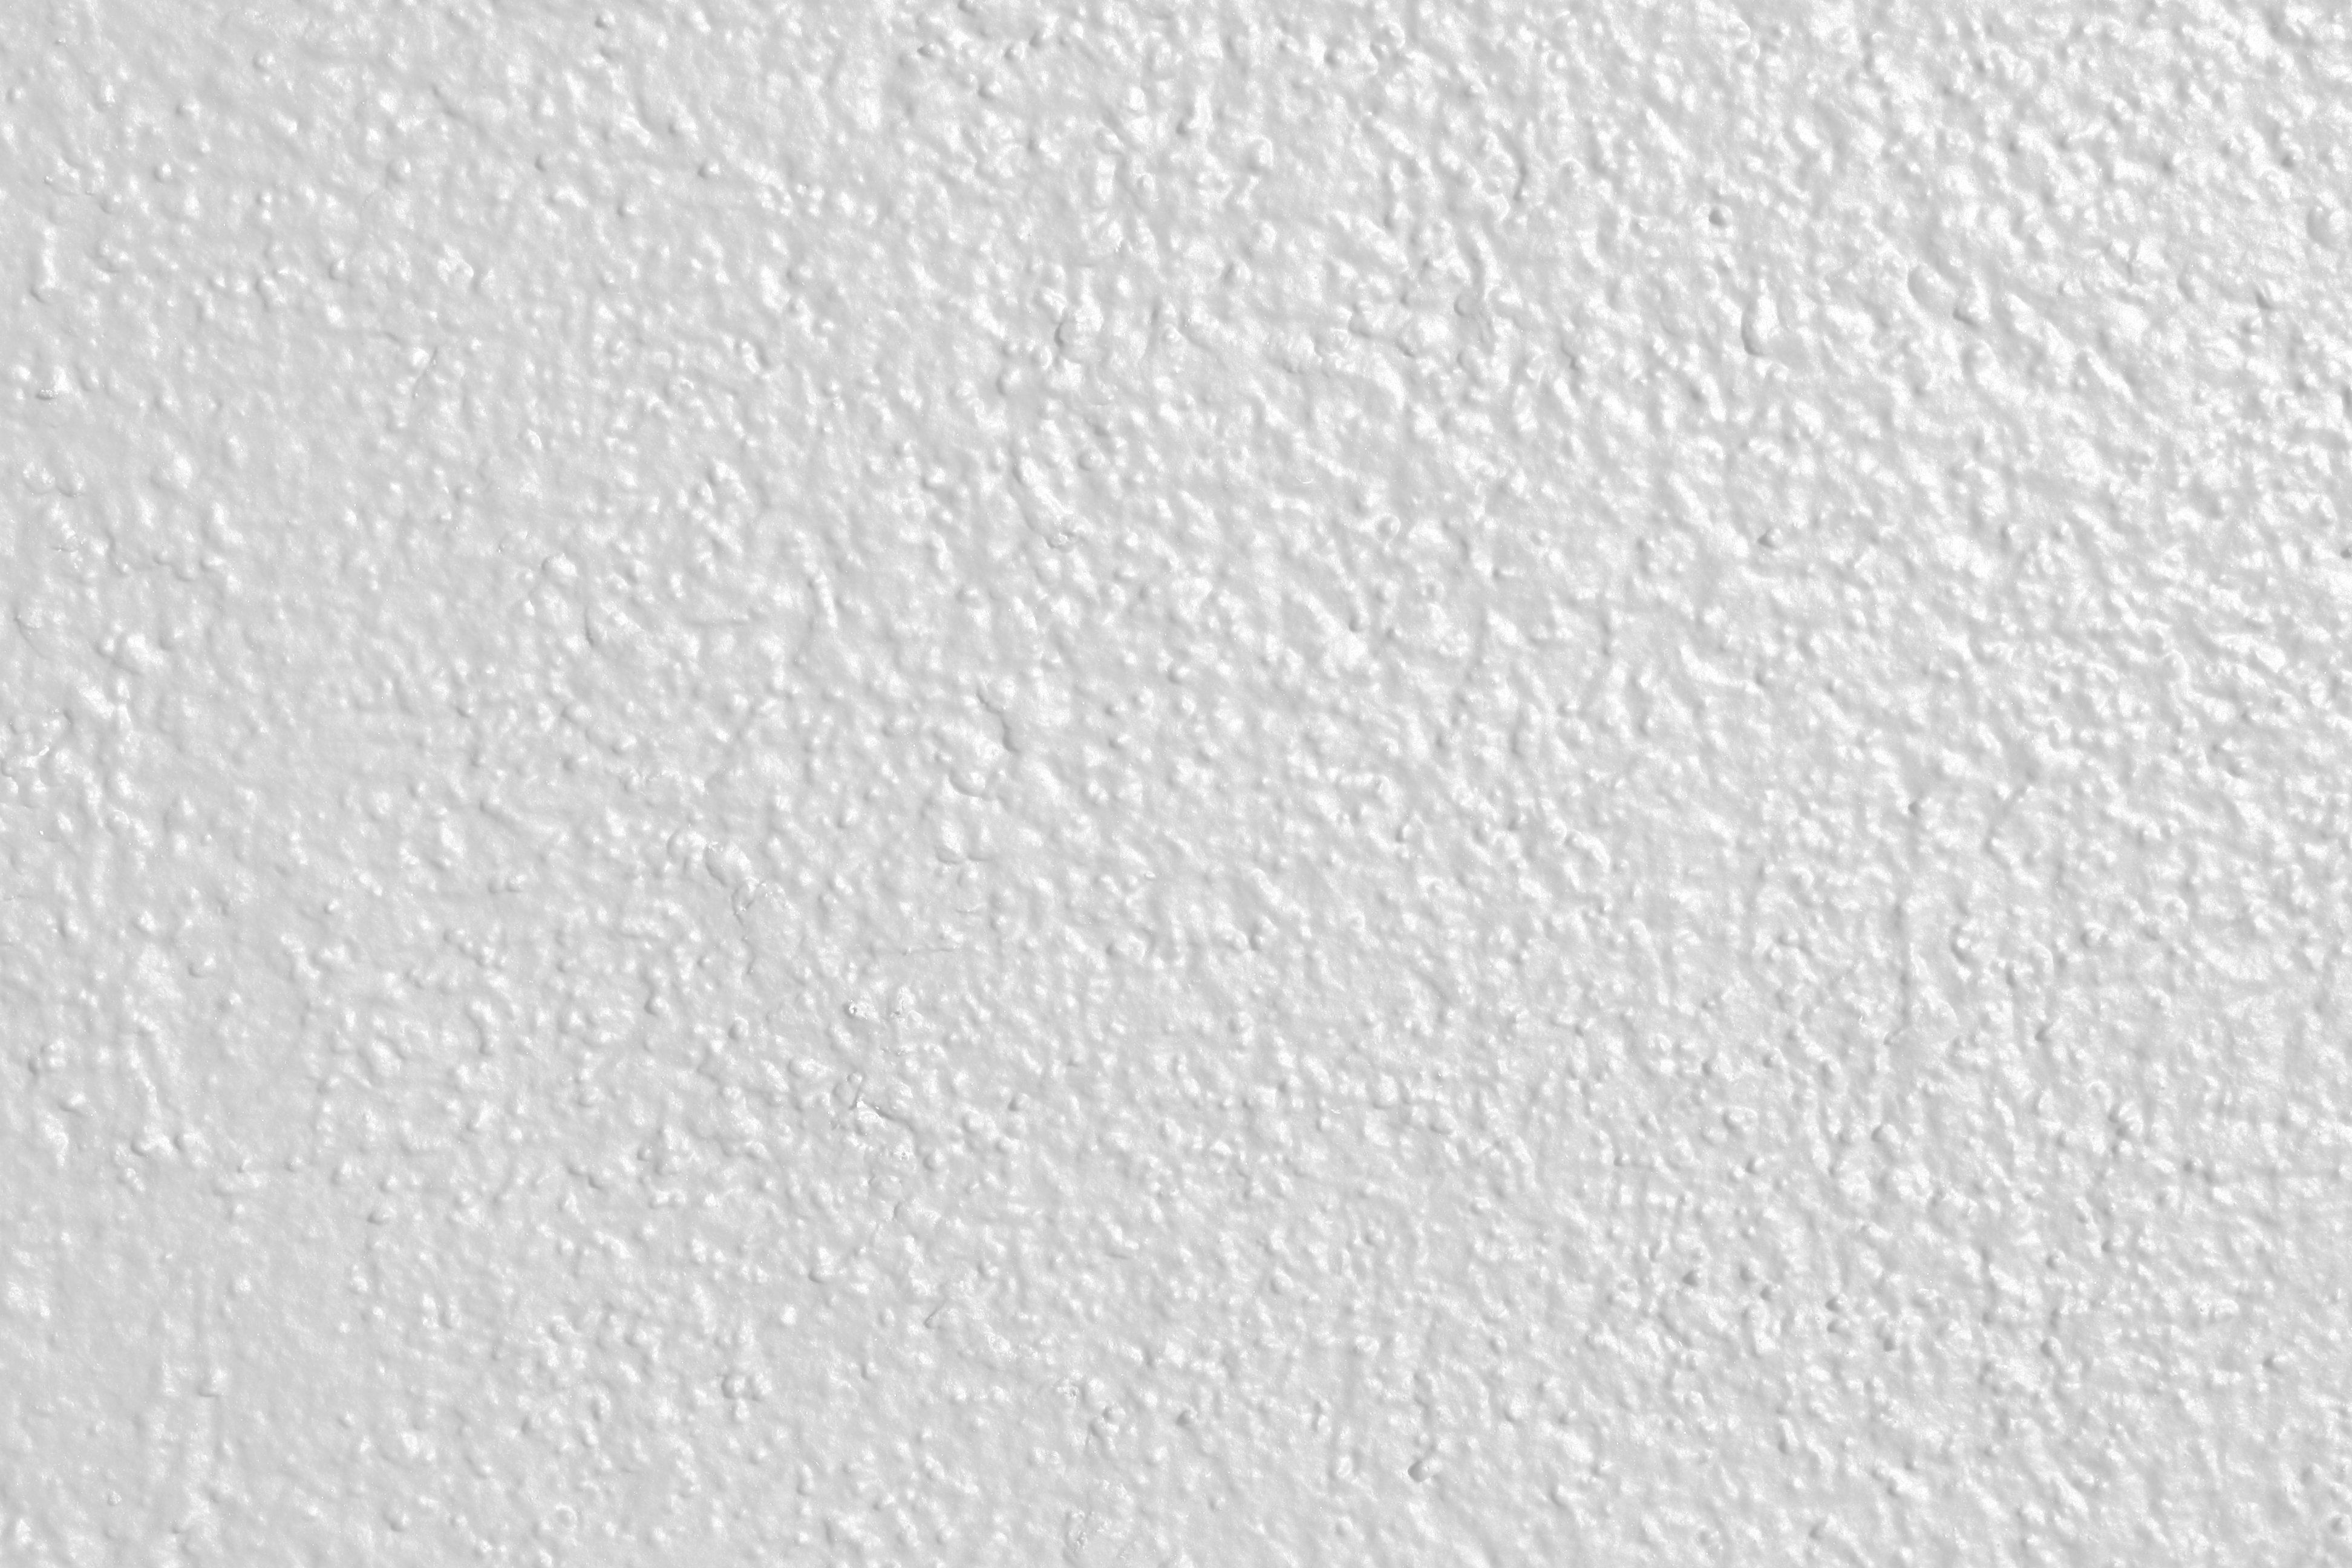 White Painted Wall Texture | Blanco | Pinterest | Textured ...